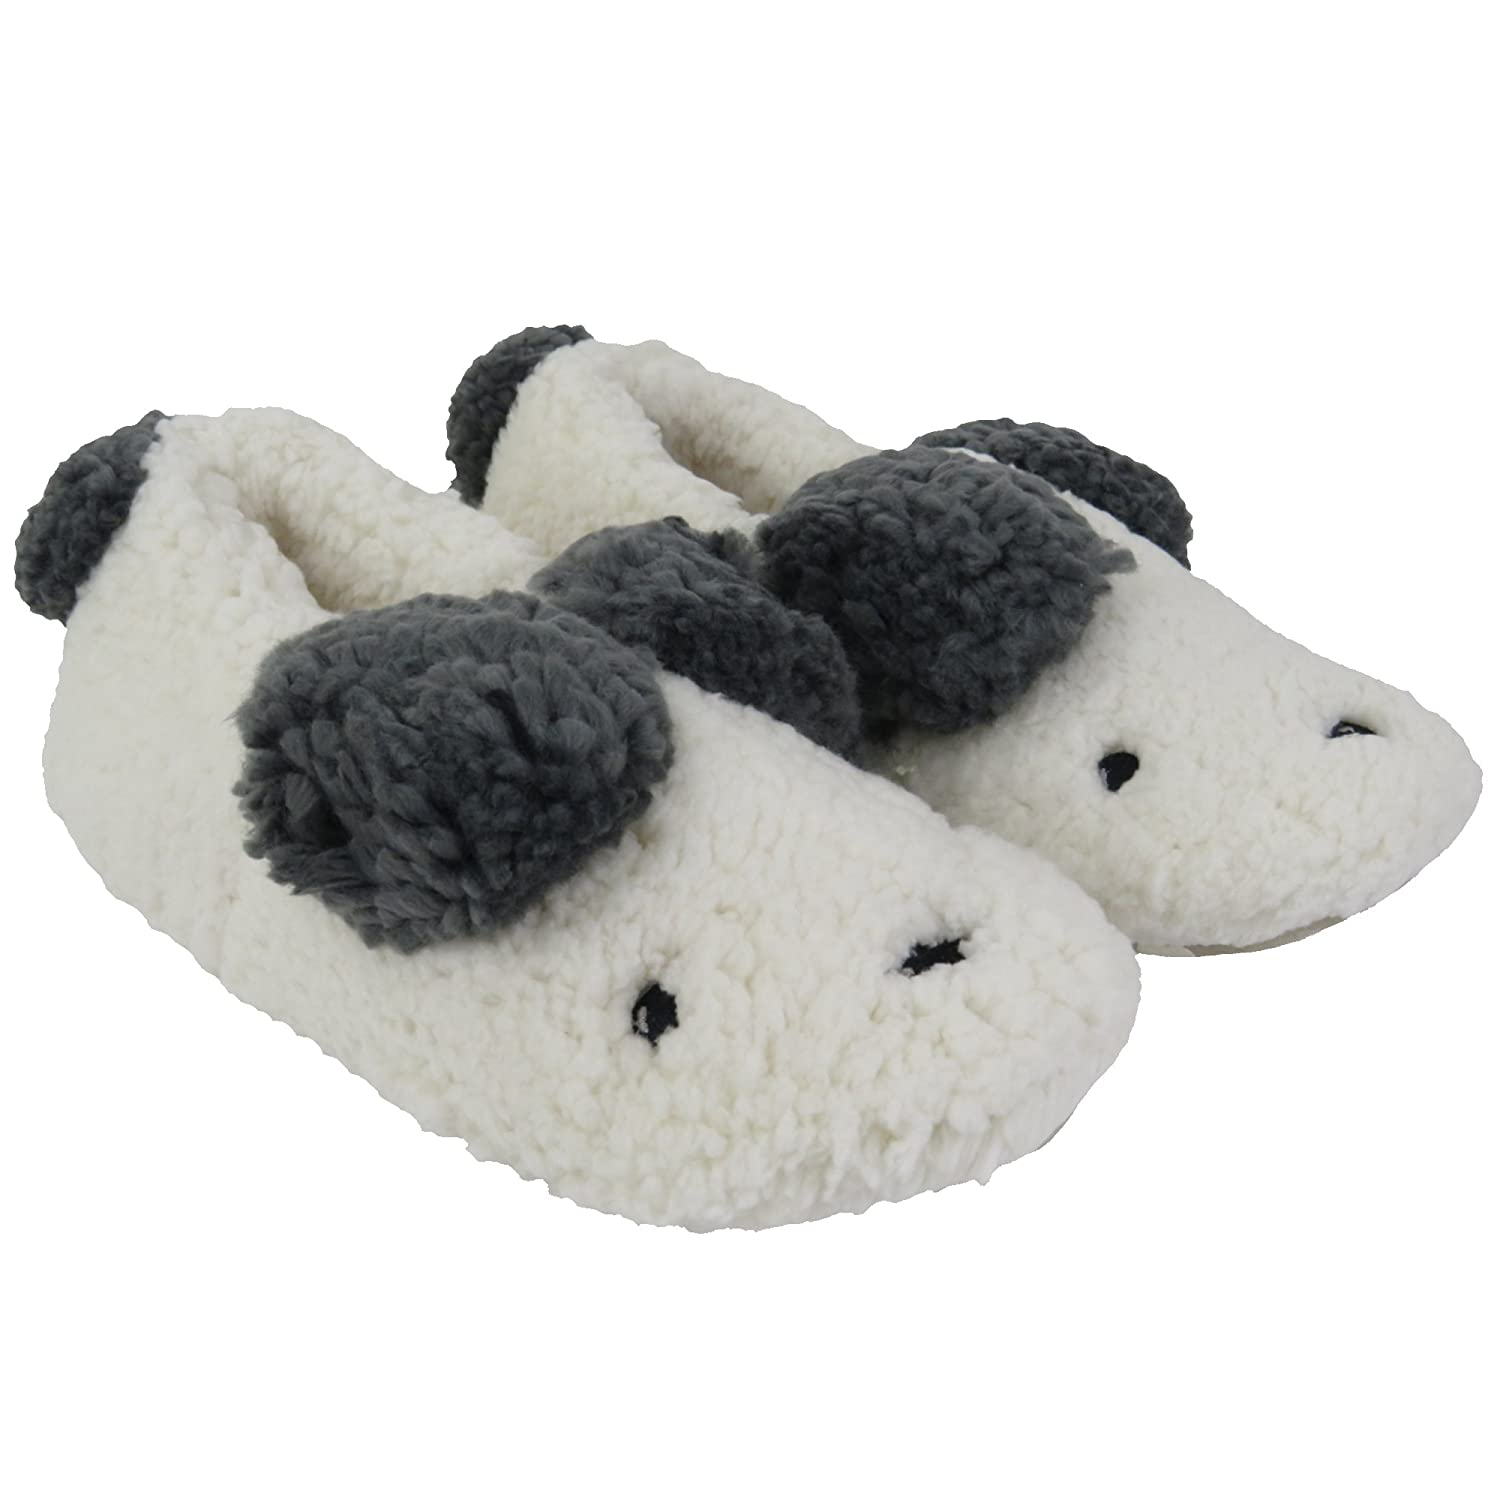 de5a5c8debf Womens Fuzzy Christmas Animal House Slippers Ladies Cute Bedroom Indoor Winter  Slippers Size S  Amazon.co.uk  Shoes   Bags